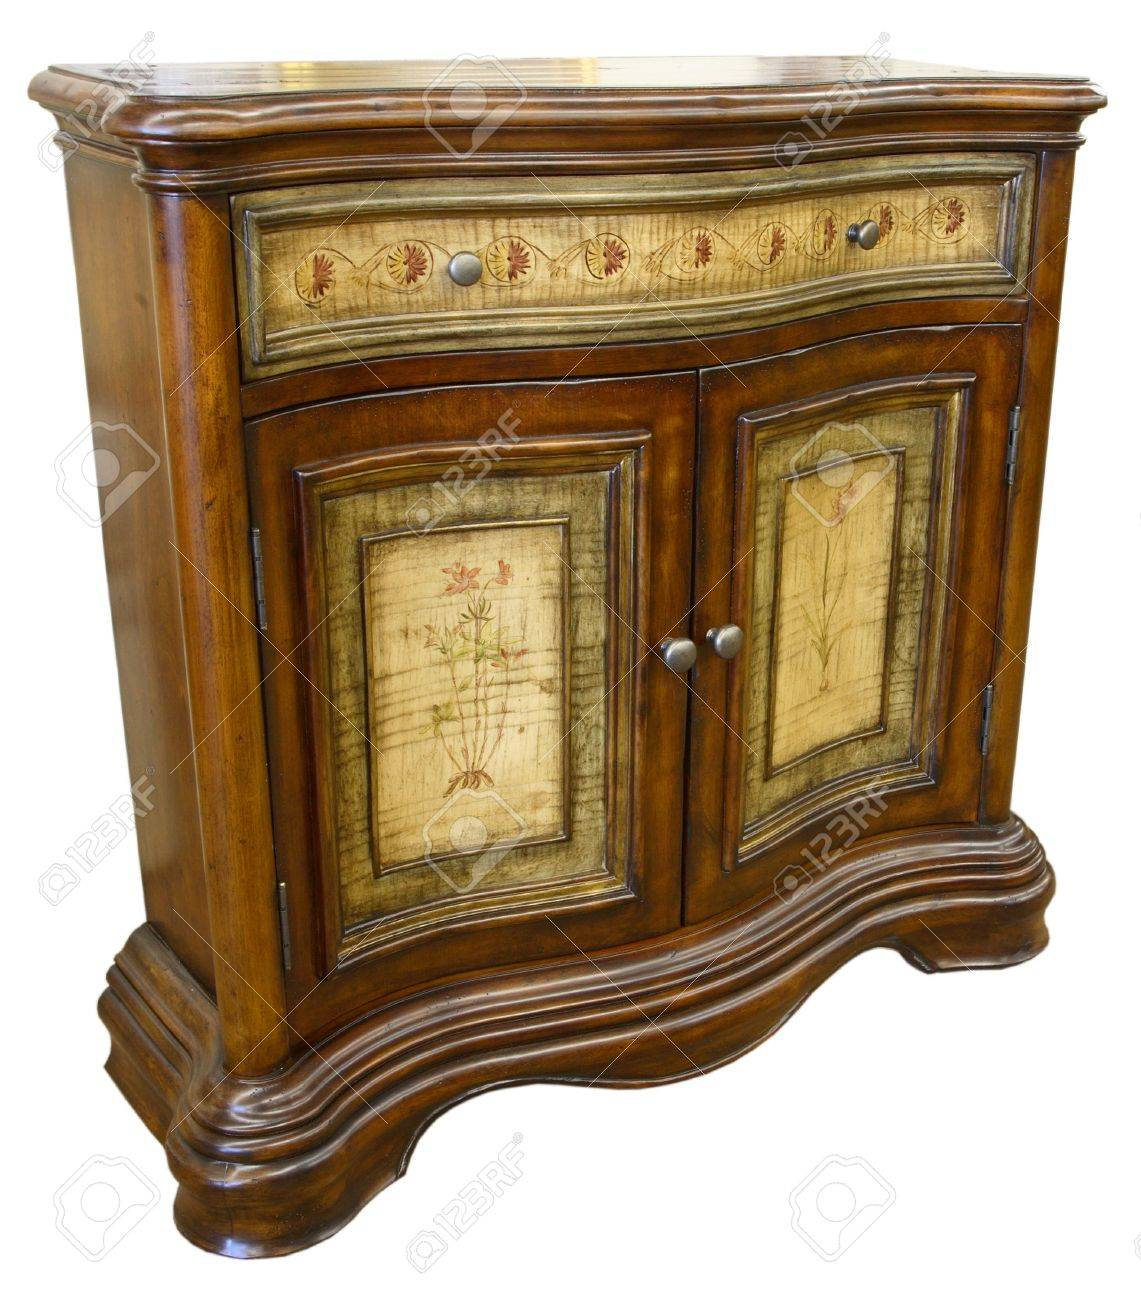 Antique Hand Painted Sofa Table Console Cabinet Stock Photo - 2699021 - Antique Hand Painted Sofa Table Console Cabinet Stock Photo, Picture